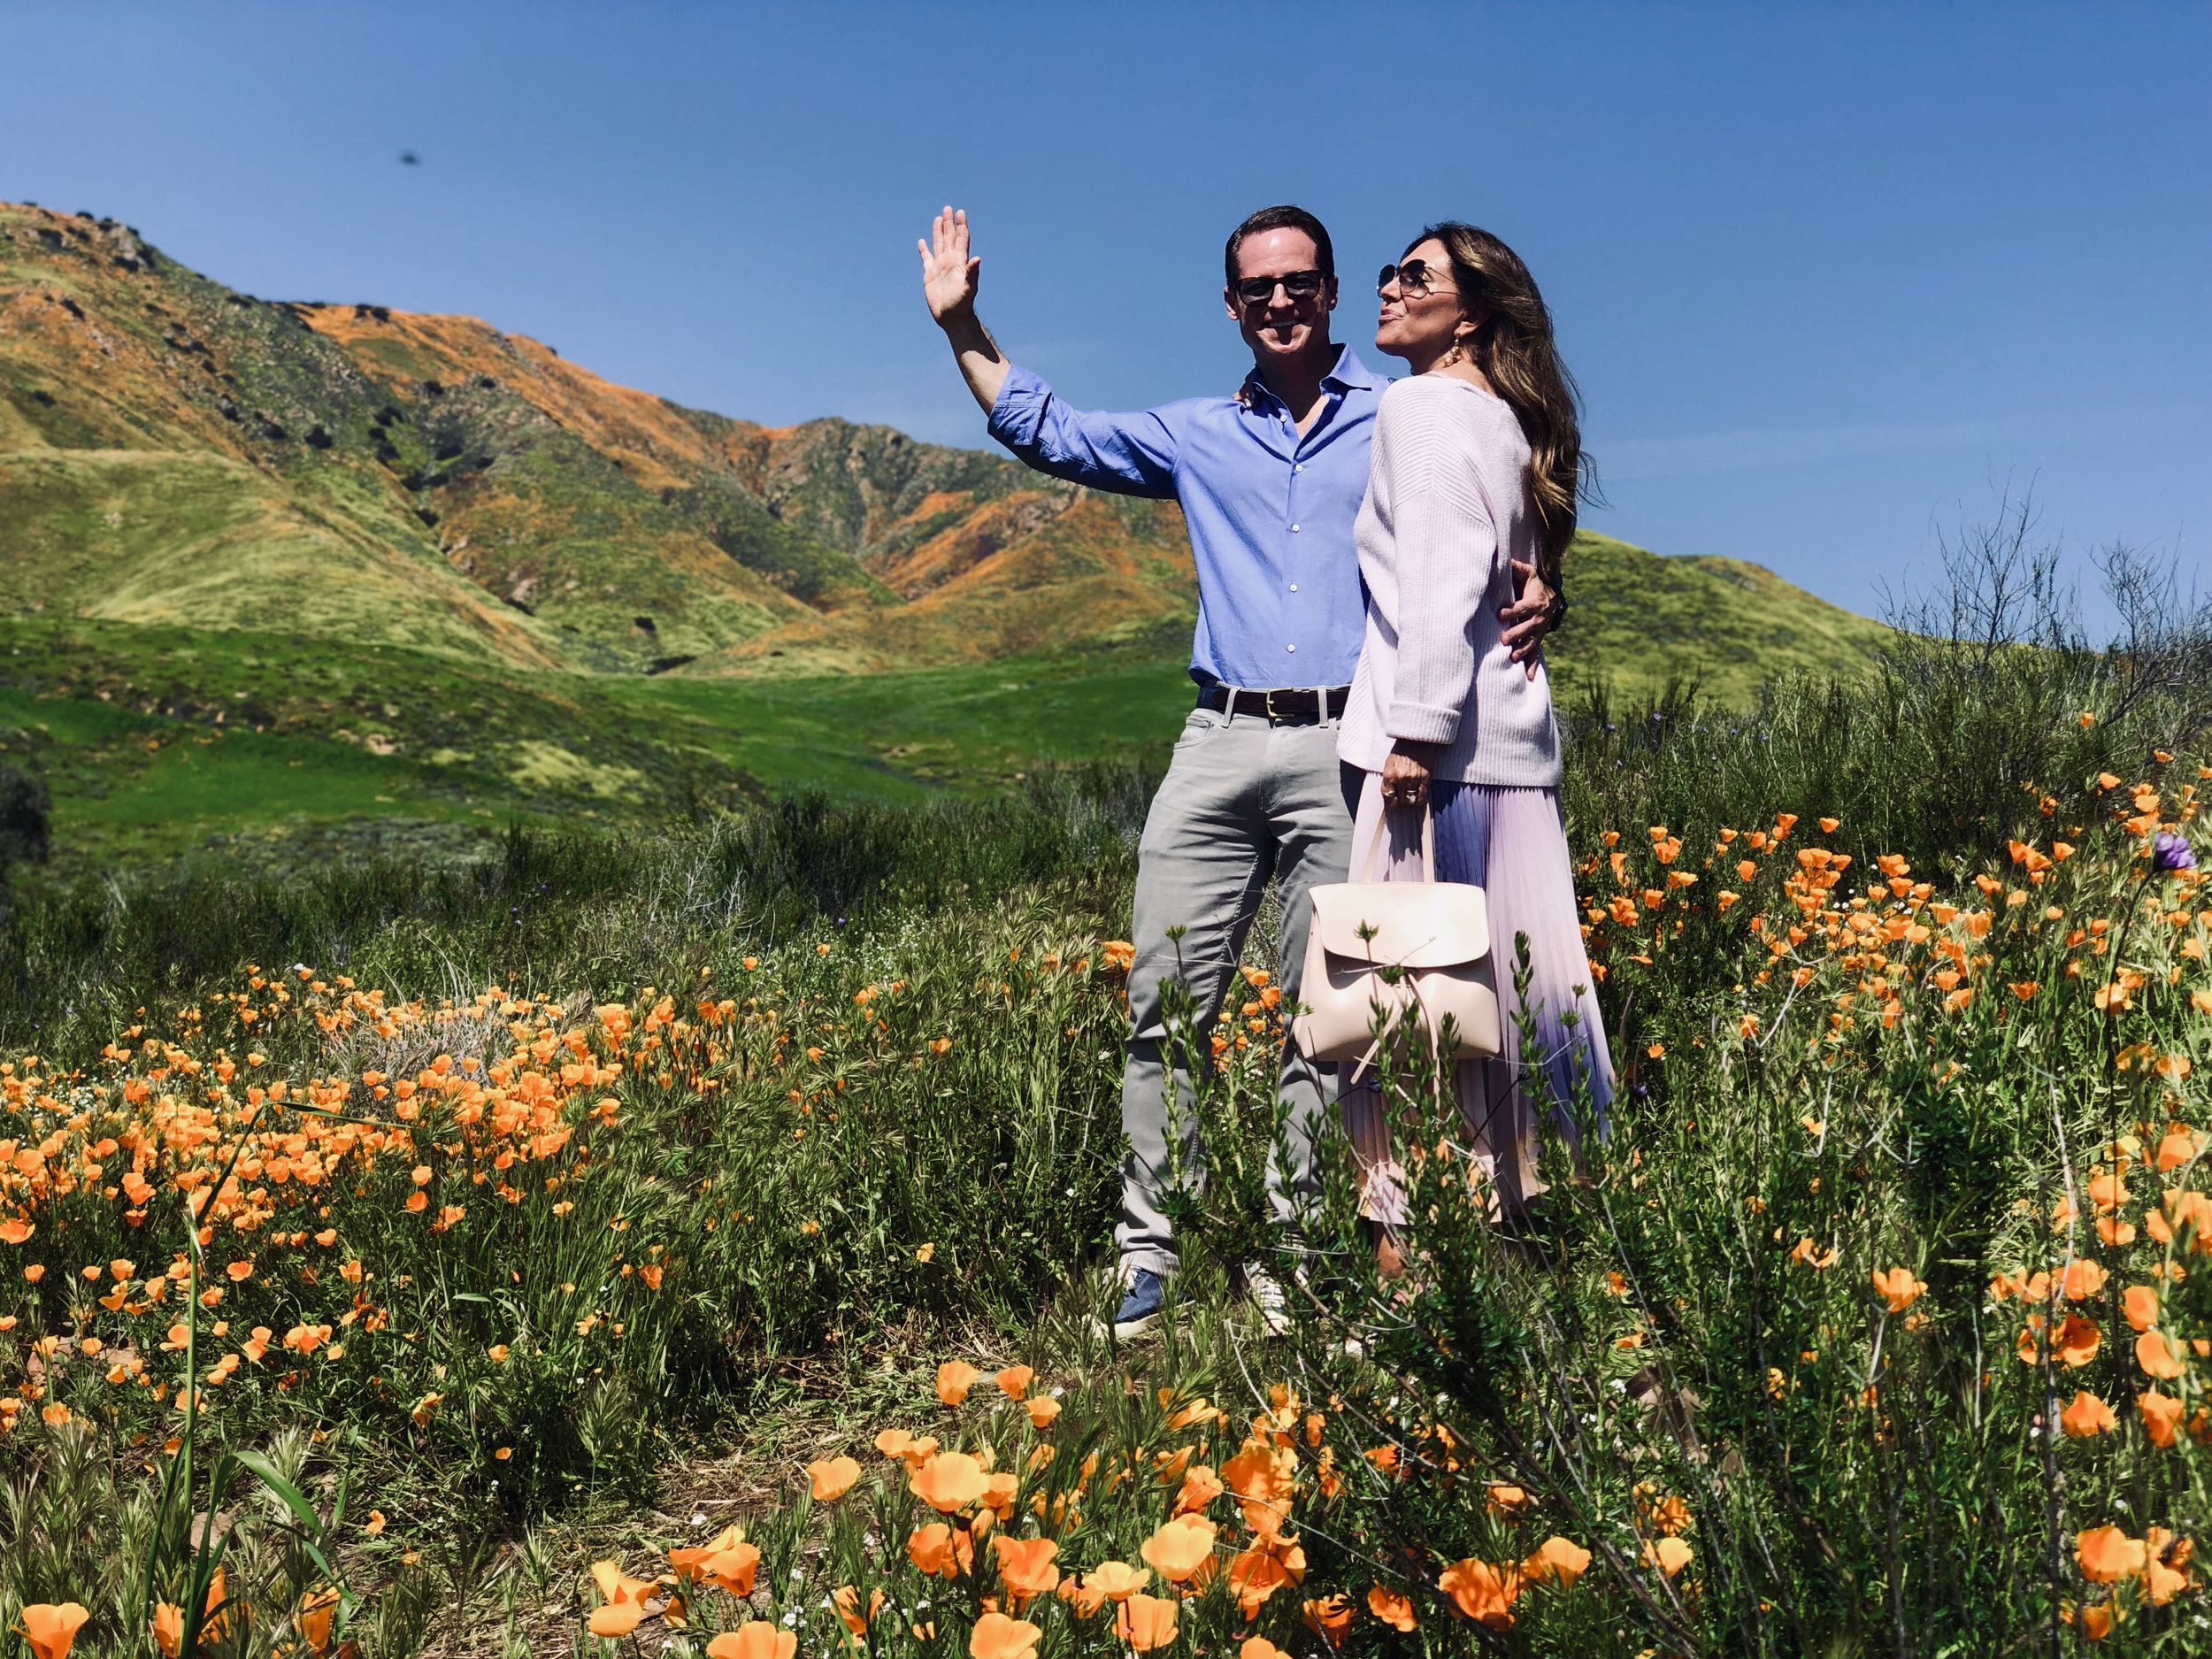 Enjoying the Super Bloom with by blogging photographer hubby Michael Meyers!